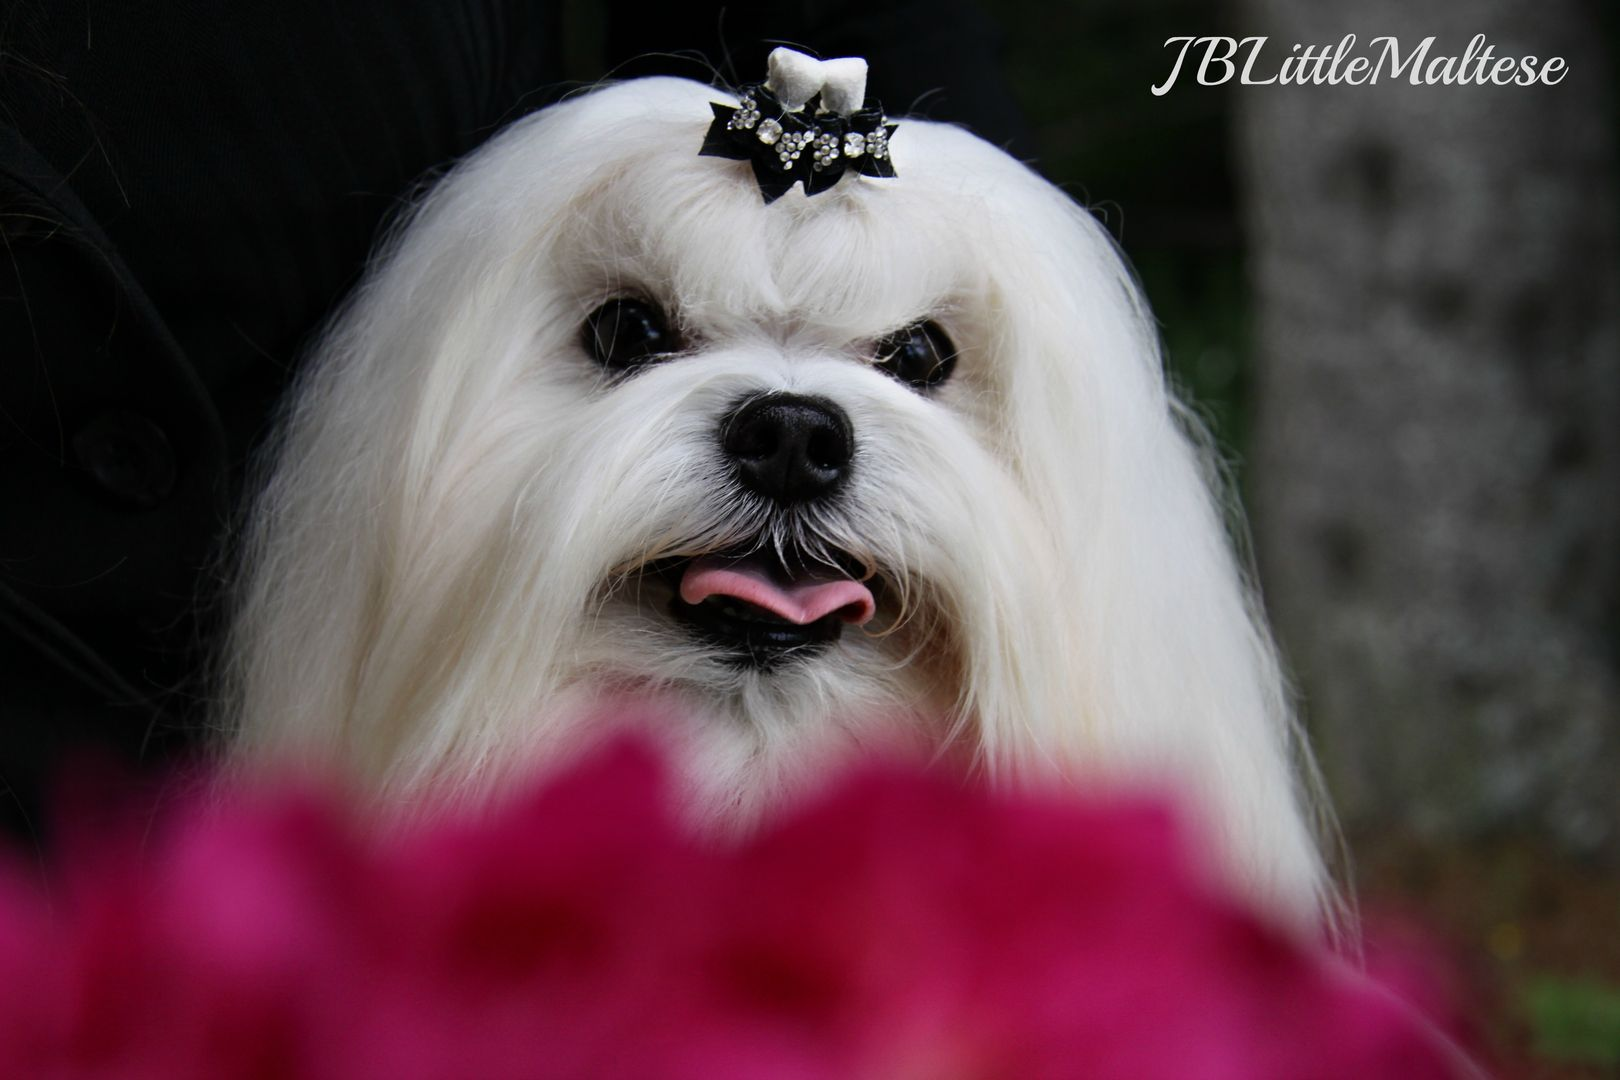 Purebred Canadian Maltese, JBLittleMaltese Reg'd is the